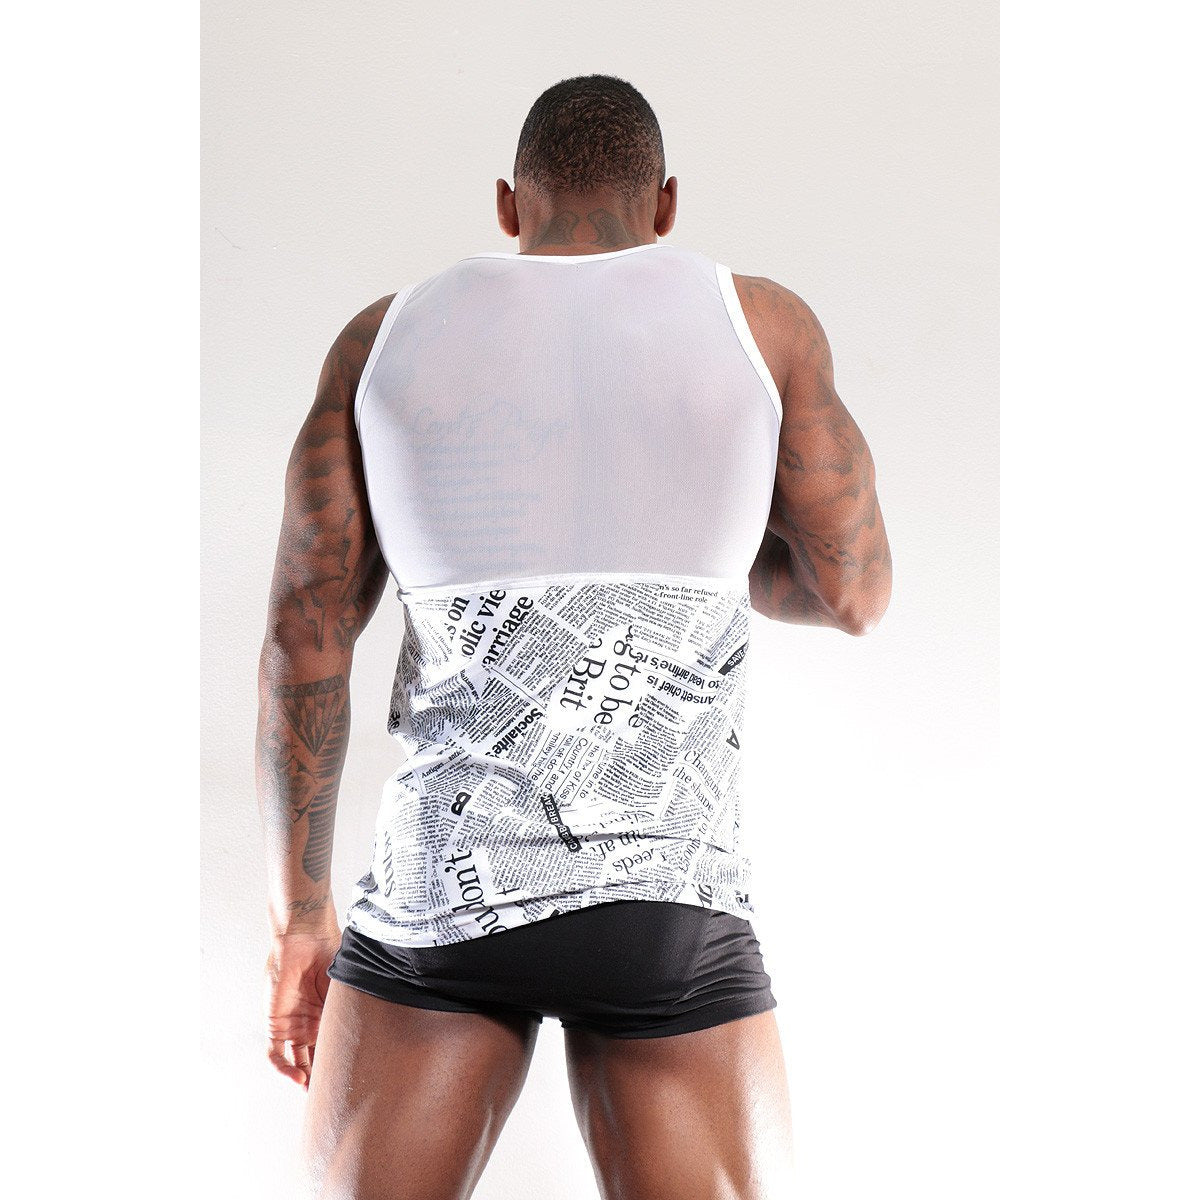 Tank top with Mesh and Graphic Writings